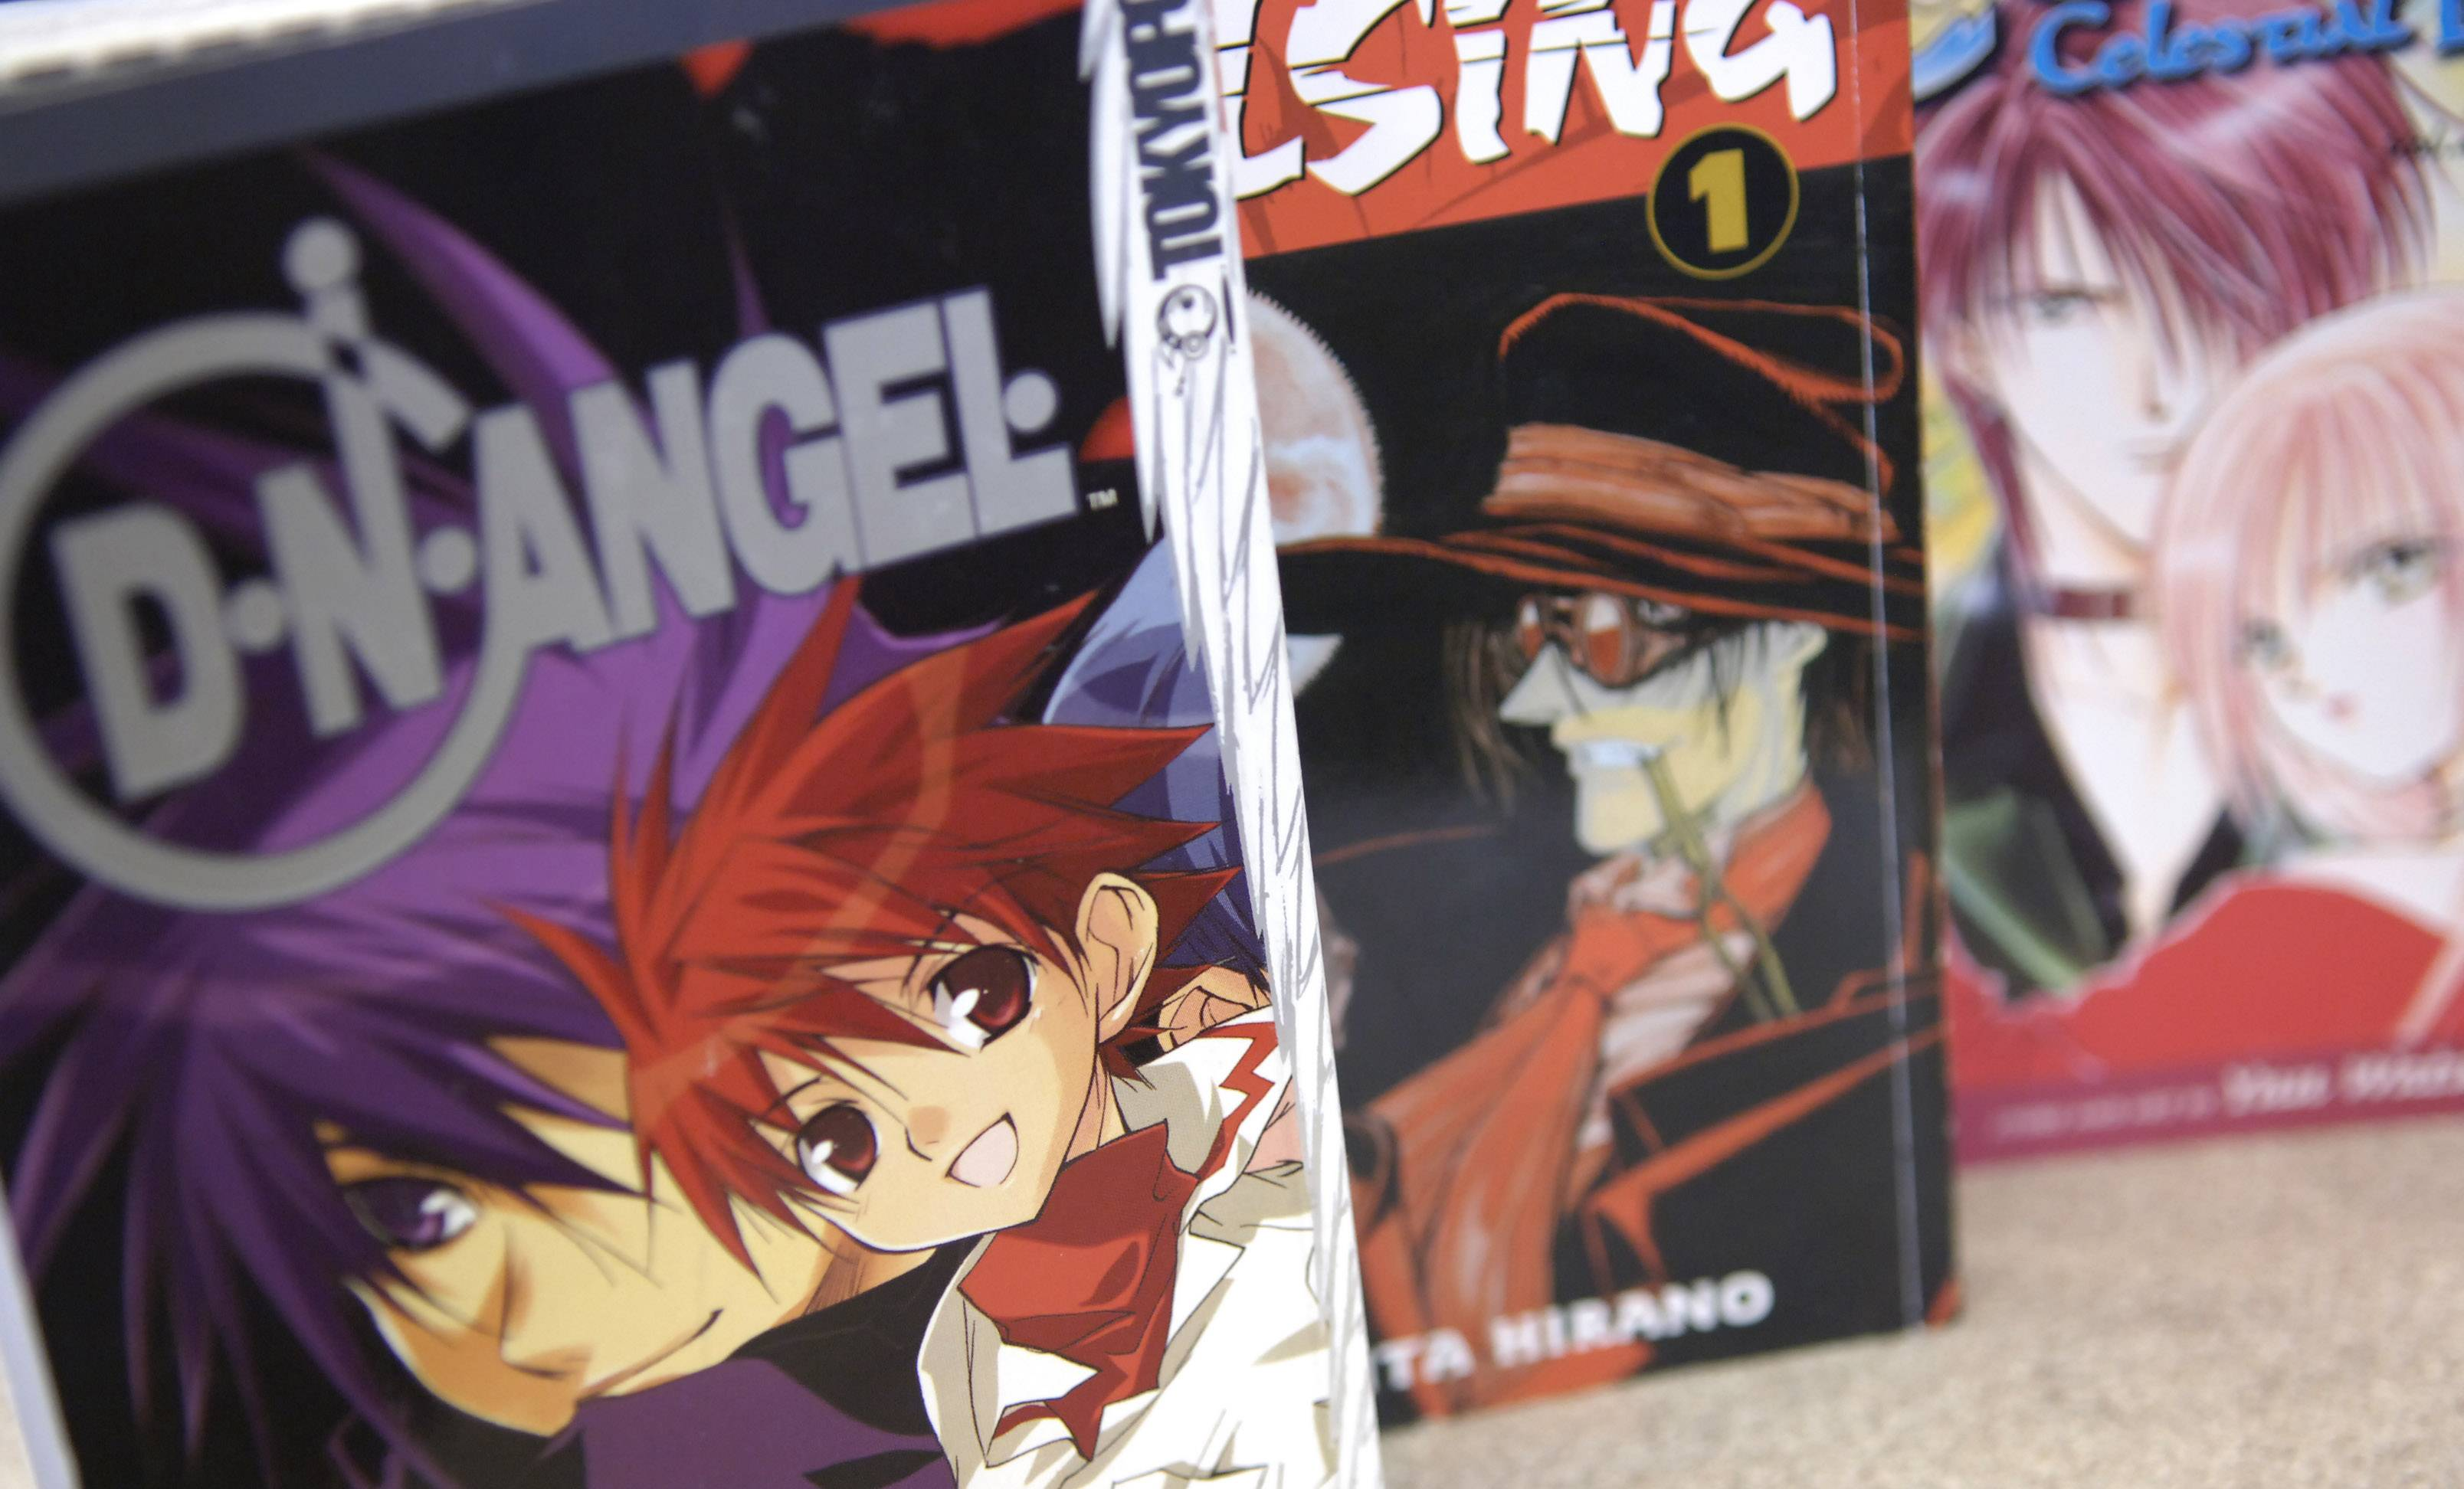 Shop for manga books and more at the Fourth Annual Anime Midwest Convention at the Hyatt Regency O'Hare in Rosemont.